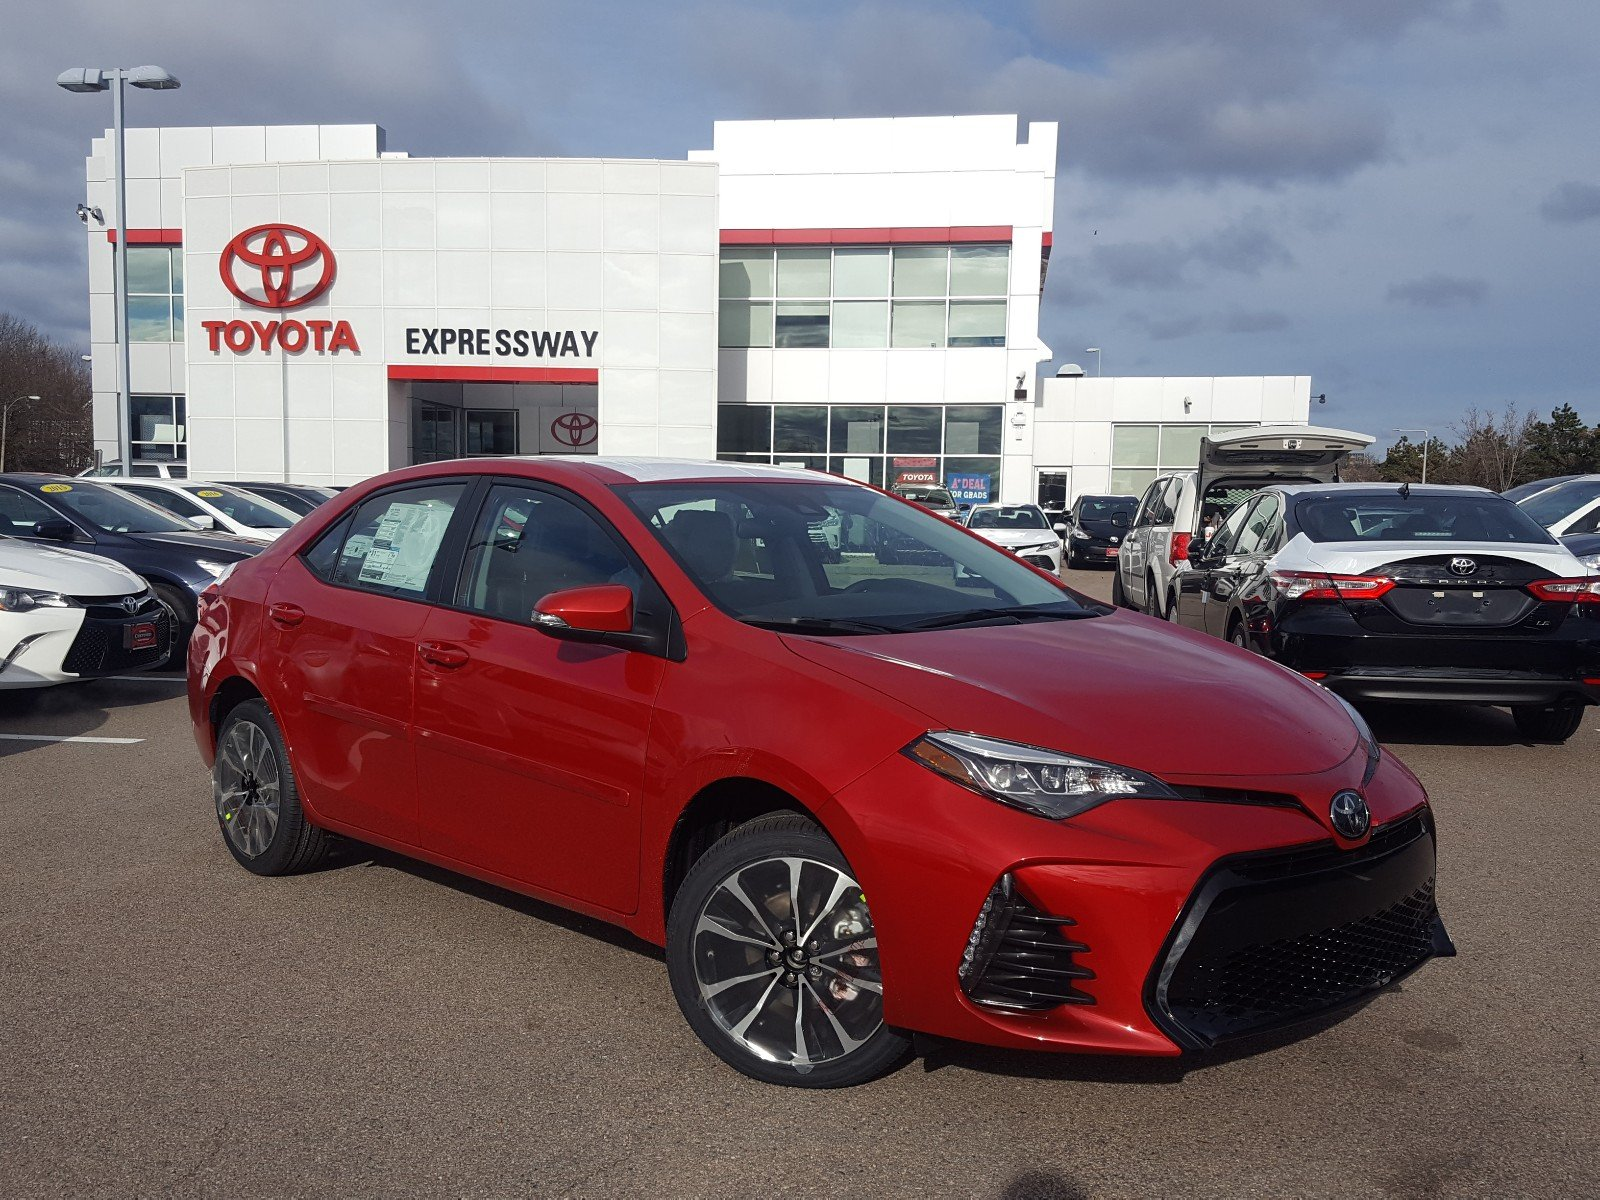 New 2019 Toyota Corolla Xse 4dr Car In Boston 23705 Expressway Toyota